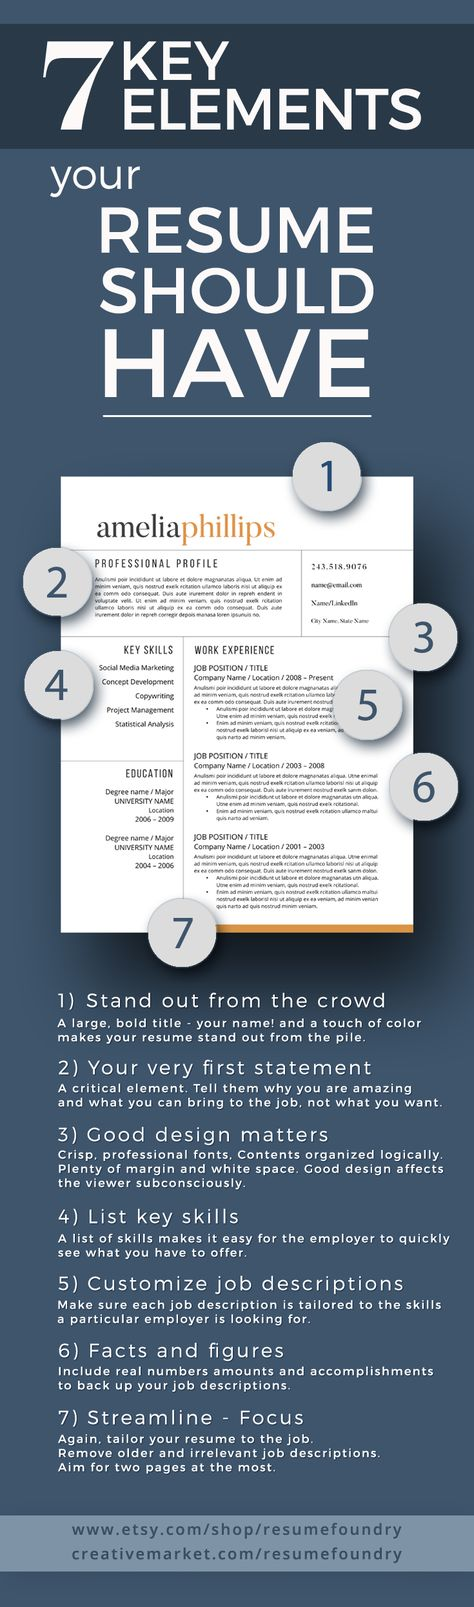 7 Key Elements your resume should have - does yours? Resume - skills to list on your resume